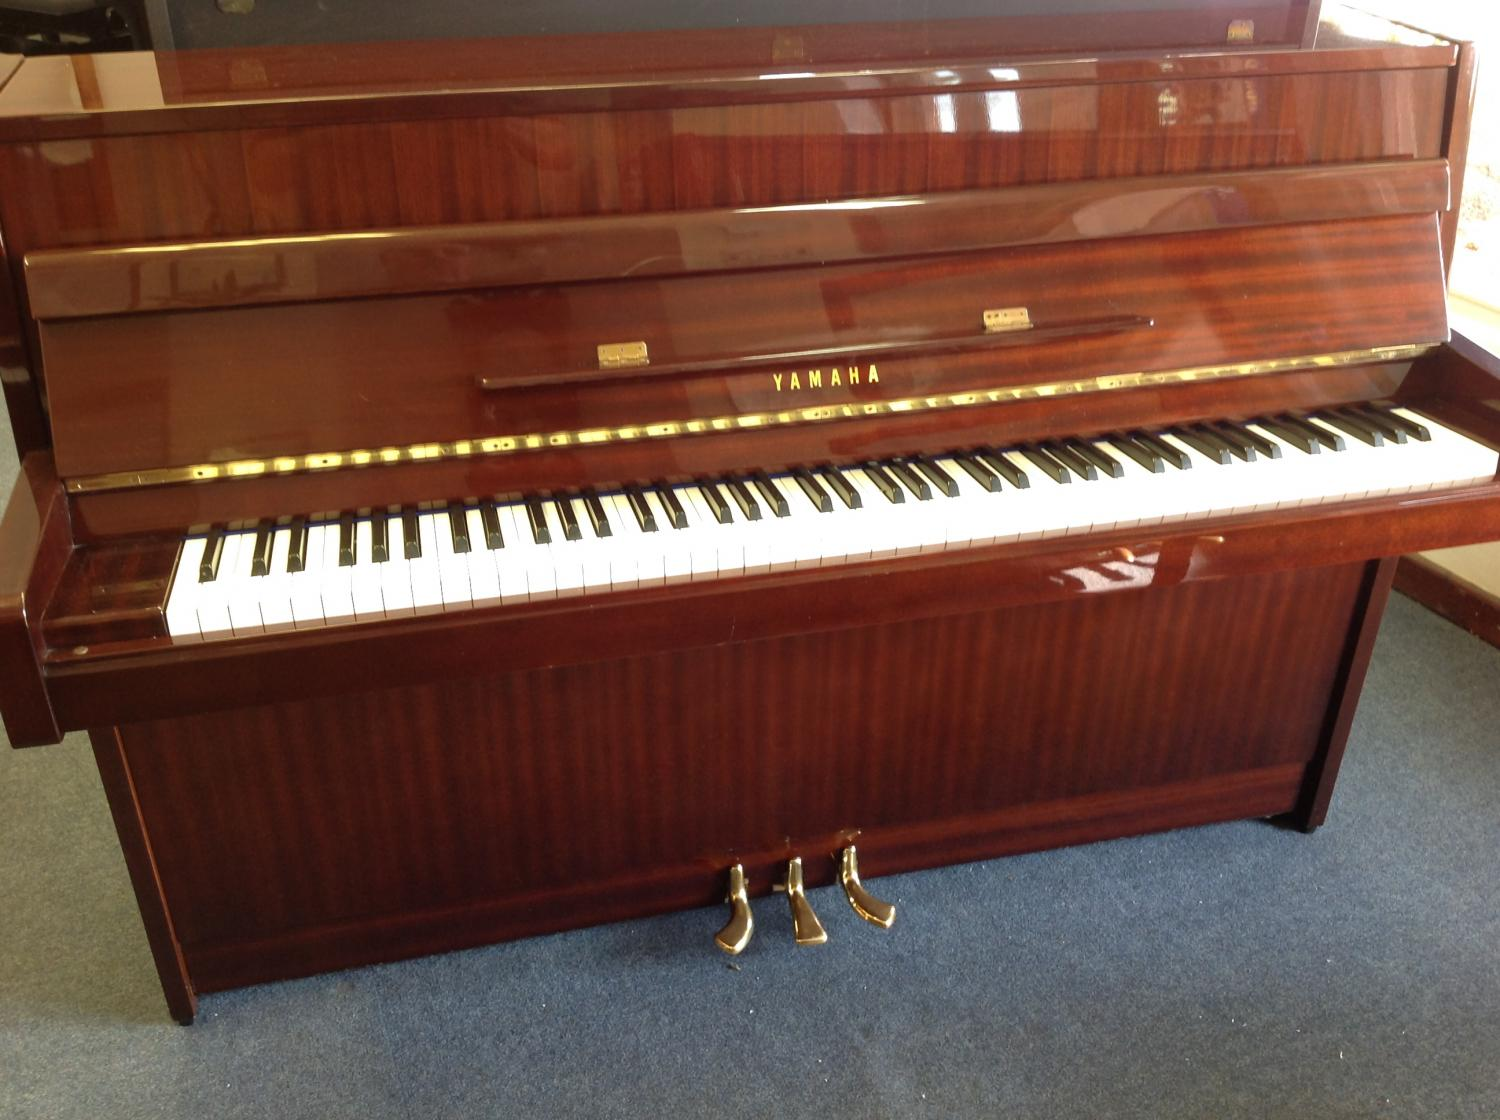 Yamaha modern upright piano for sale in modern pianos for sale for Yamaha piano upright